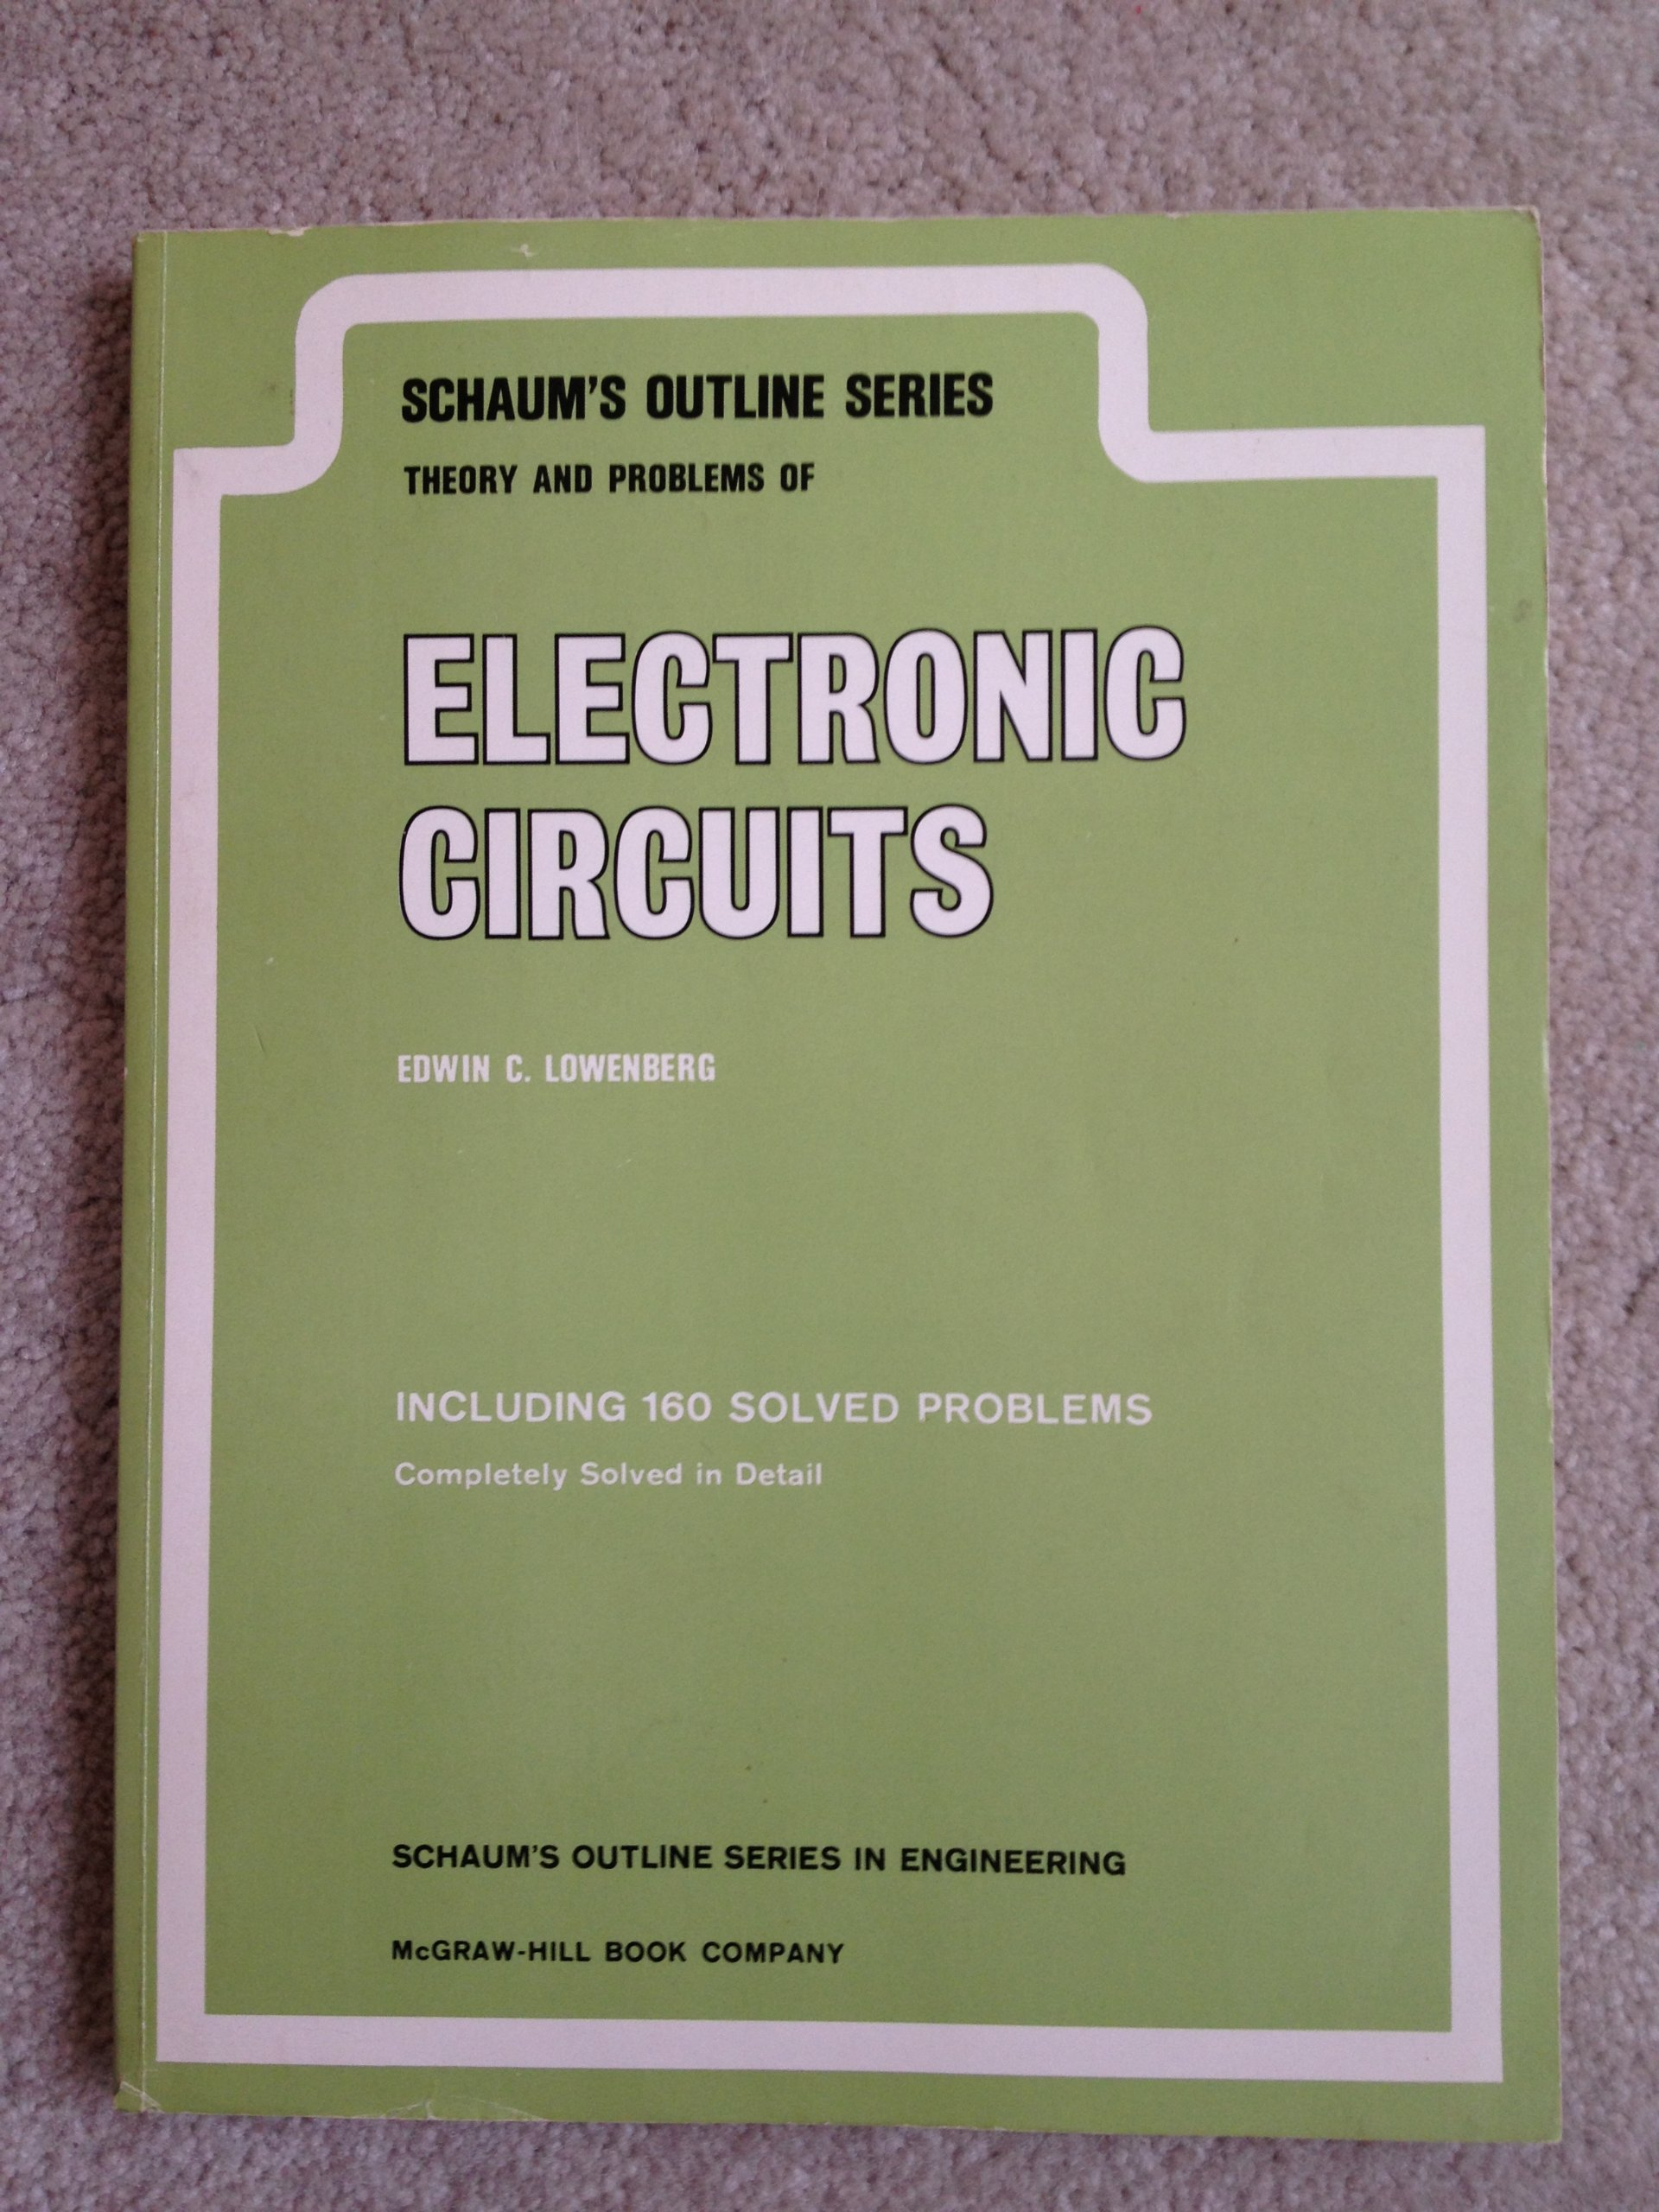 Buy Electronic Circuits Schaums Outline S Book Online At Low Electronics Prices In India Reviews Ratings